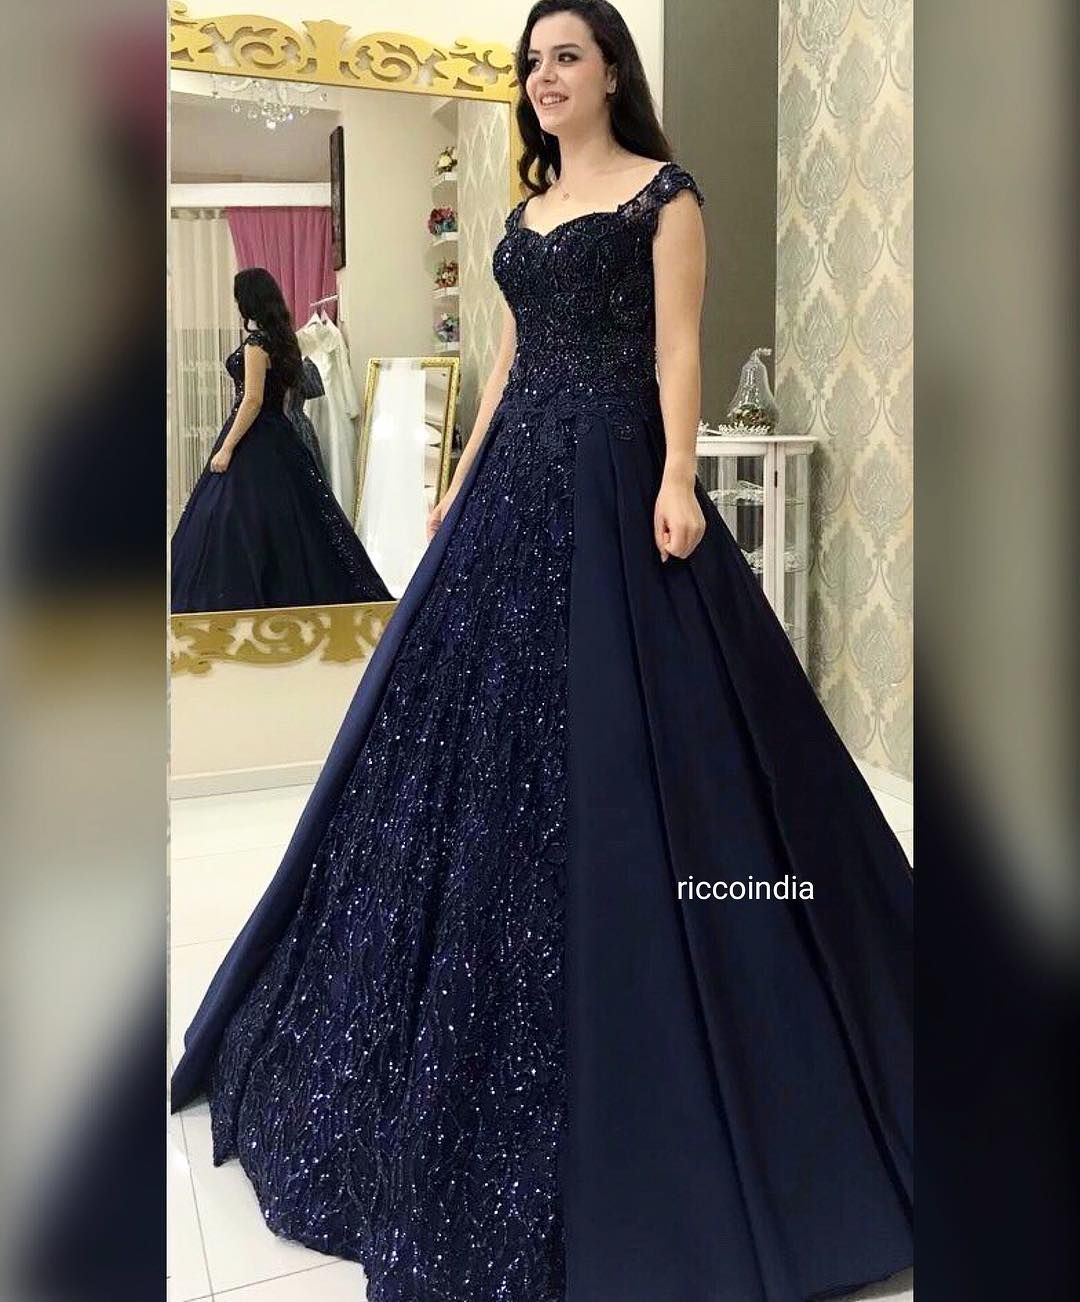 Visioninblue Custommade Bridalcouture Weddingreception Ballgown Statementbride Riccoindia Indian Gowns Dresses Cocktail Gowns Indian Wedding Gowns